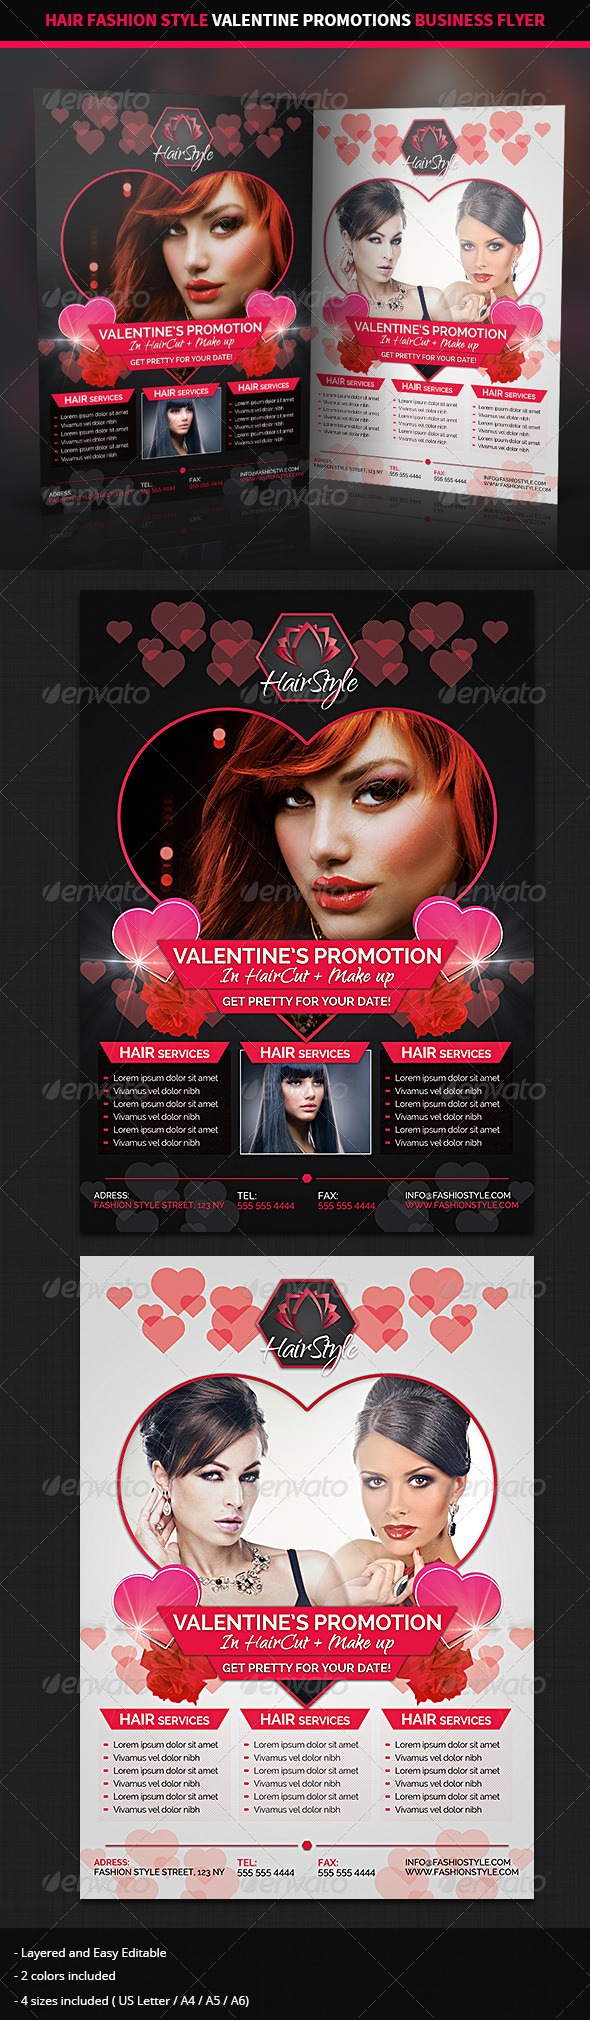 Hair Salon Valentine Promotions Business Flyer By Hollymolly Graphicriver